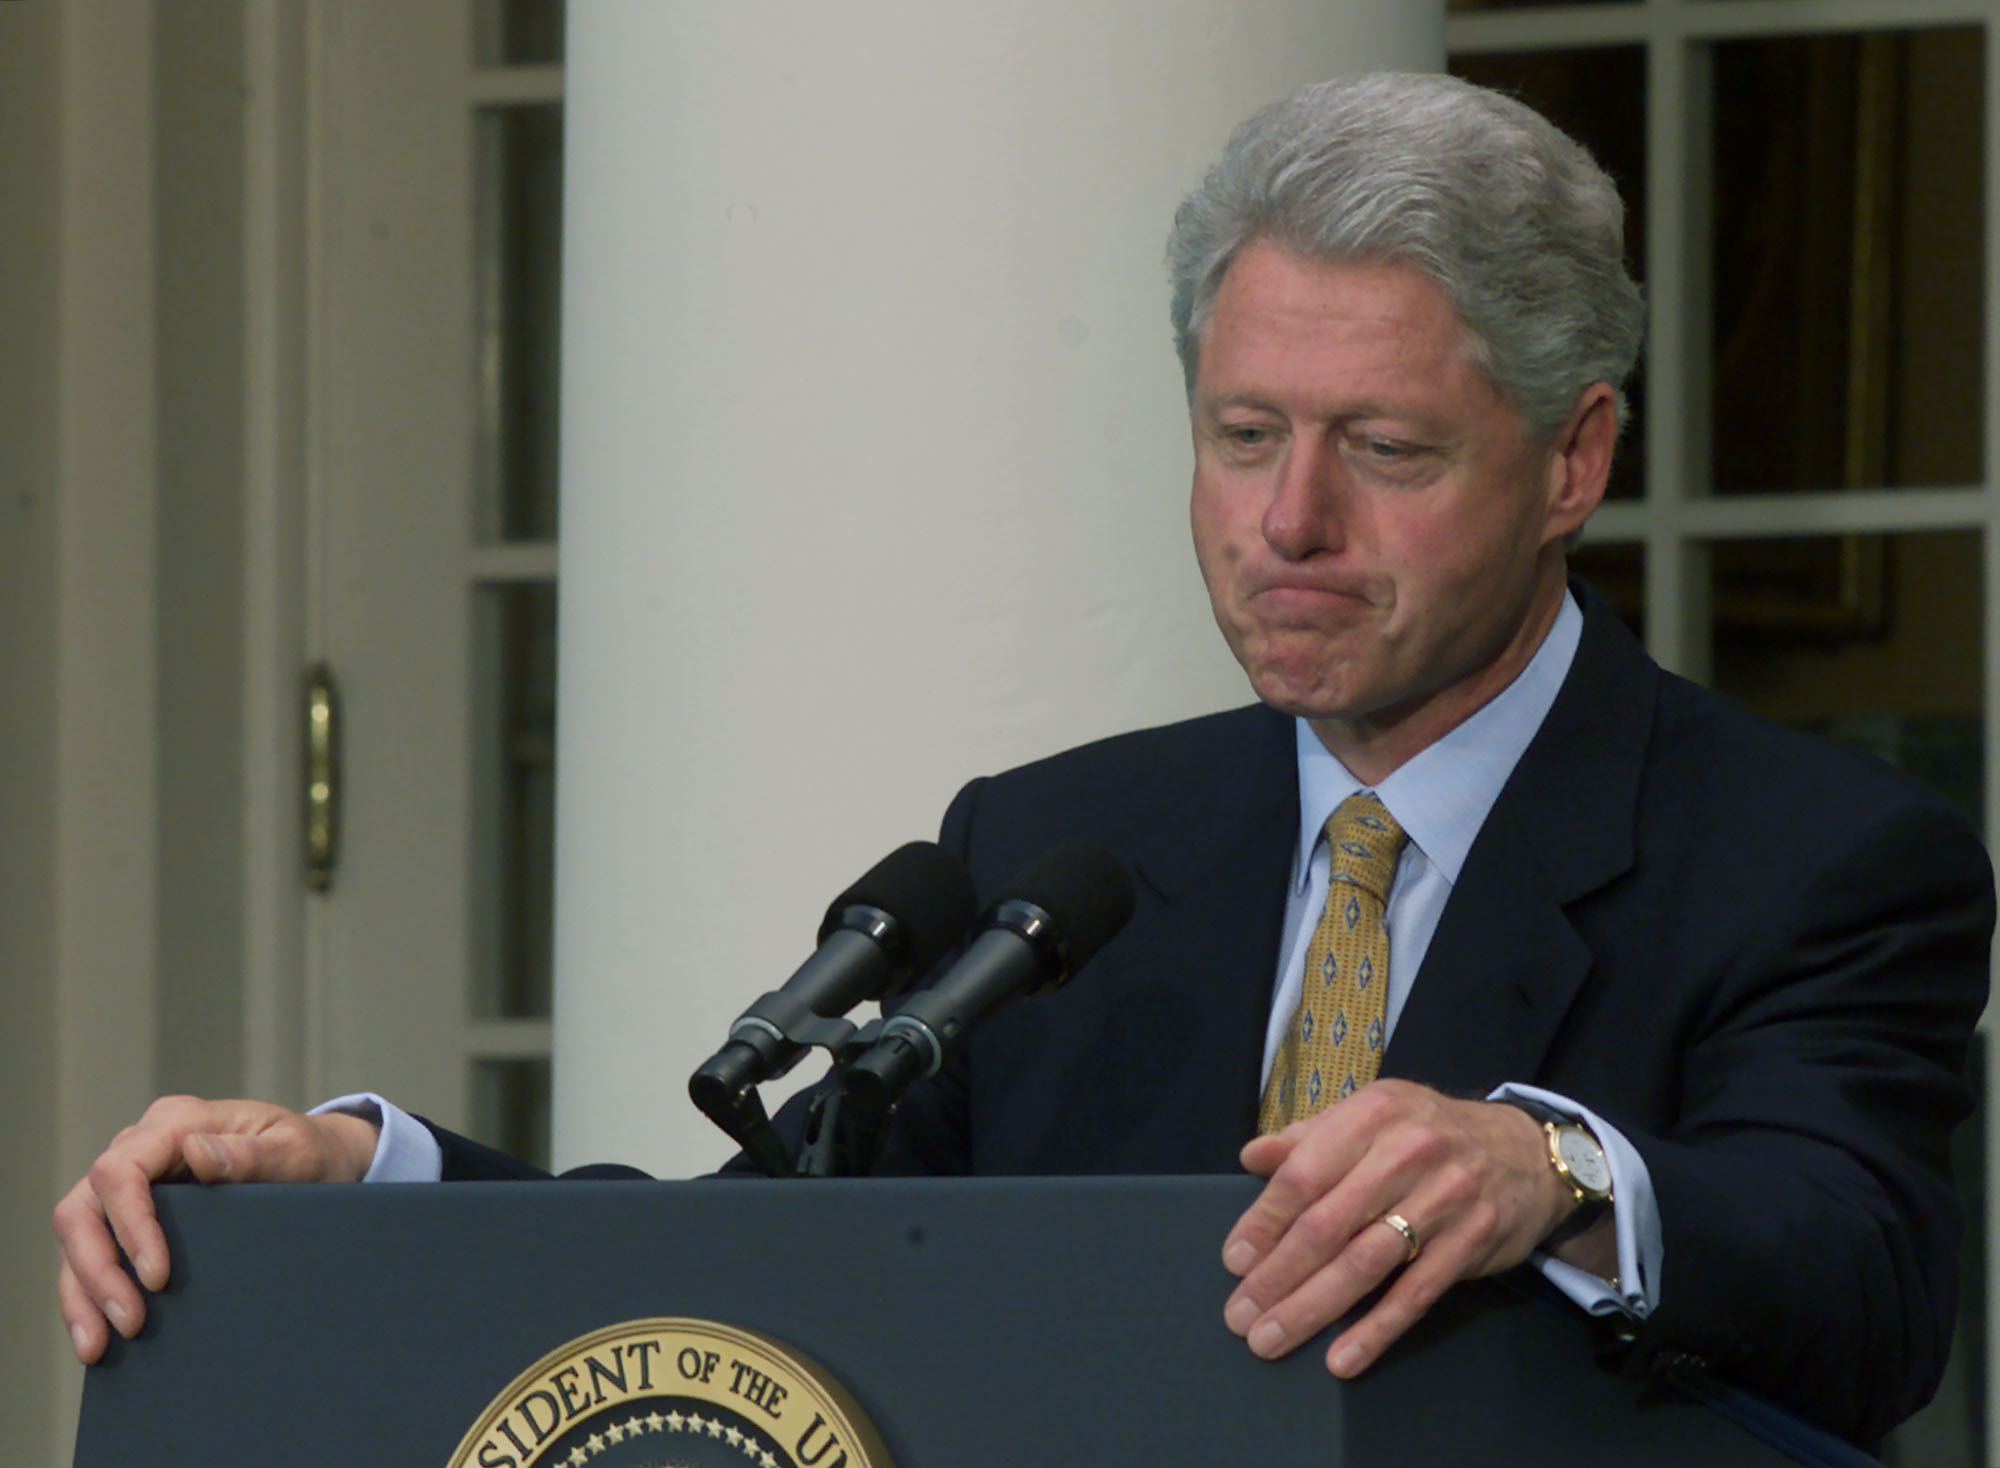 U.S. President Bill Clinton speaks in the Rose Garden, May 24, 2000 in Washington, D.C. after the China trade vote in Congress. Clinton expressed his satisfaction that the House of Representatives voted to create permanent normal trade relations with China.